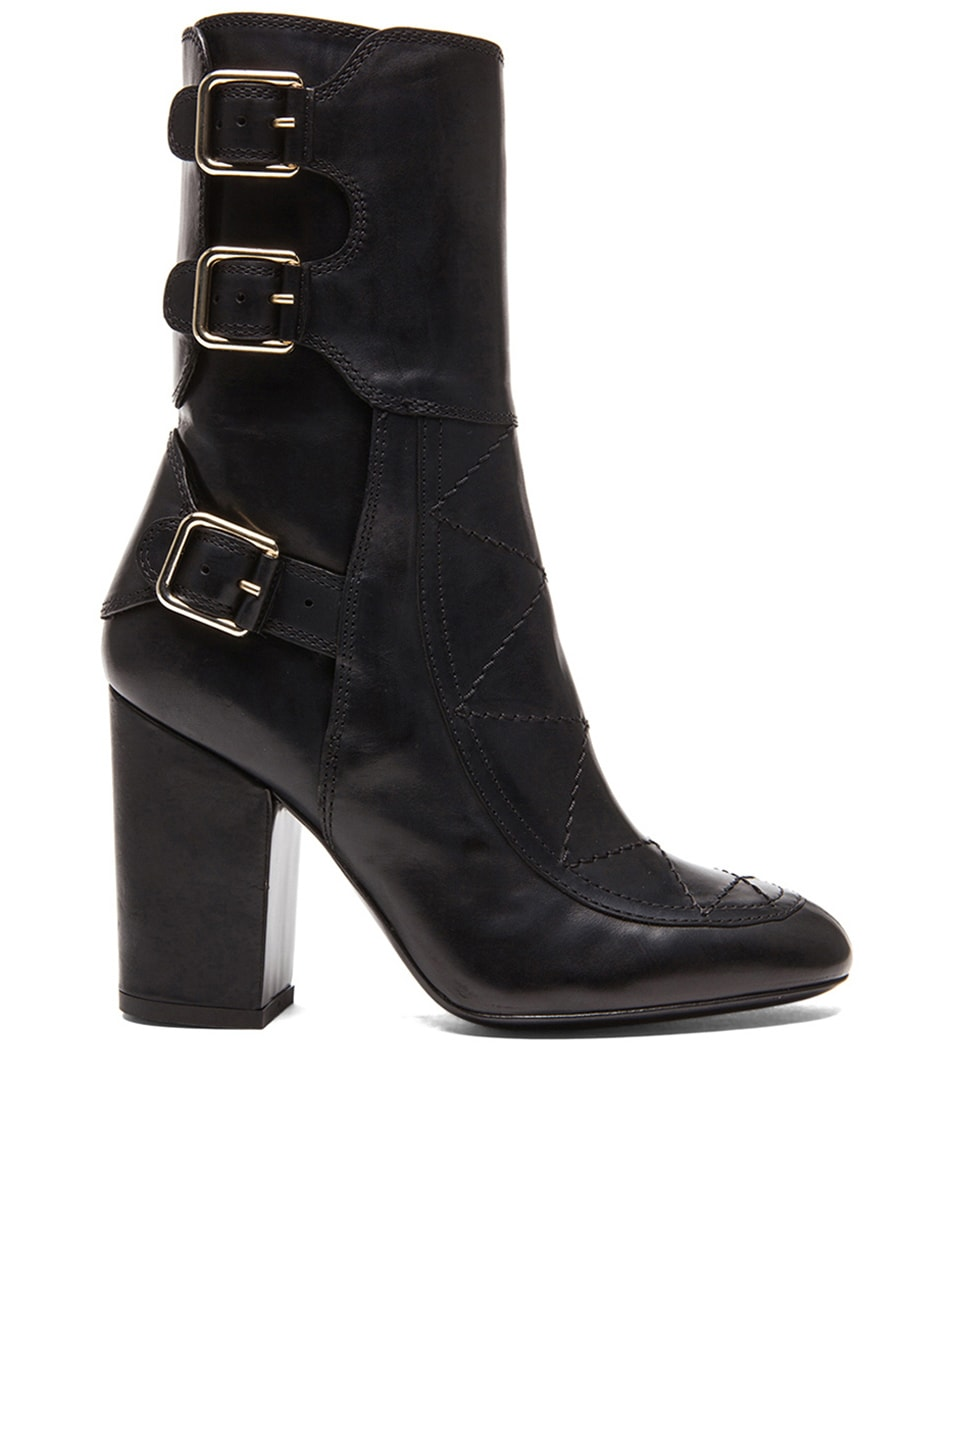 Image 1 of Laurence Dacade Merli Calfskin Leather Boots Shiny Calf in Black